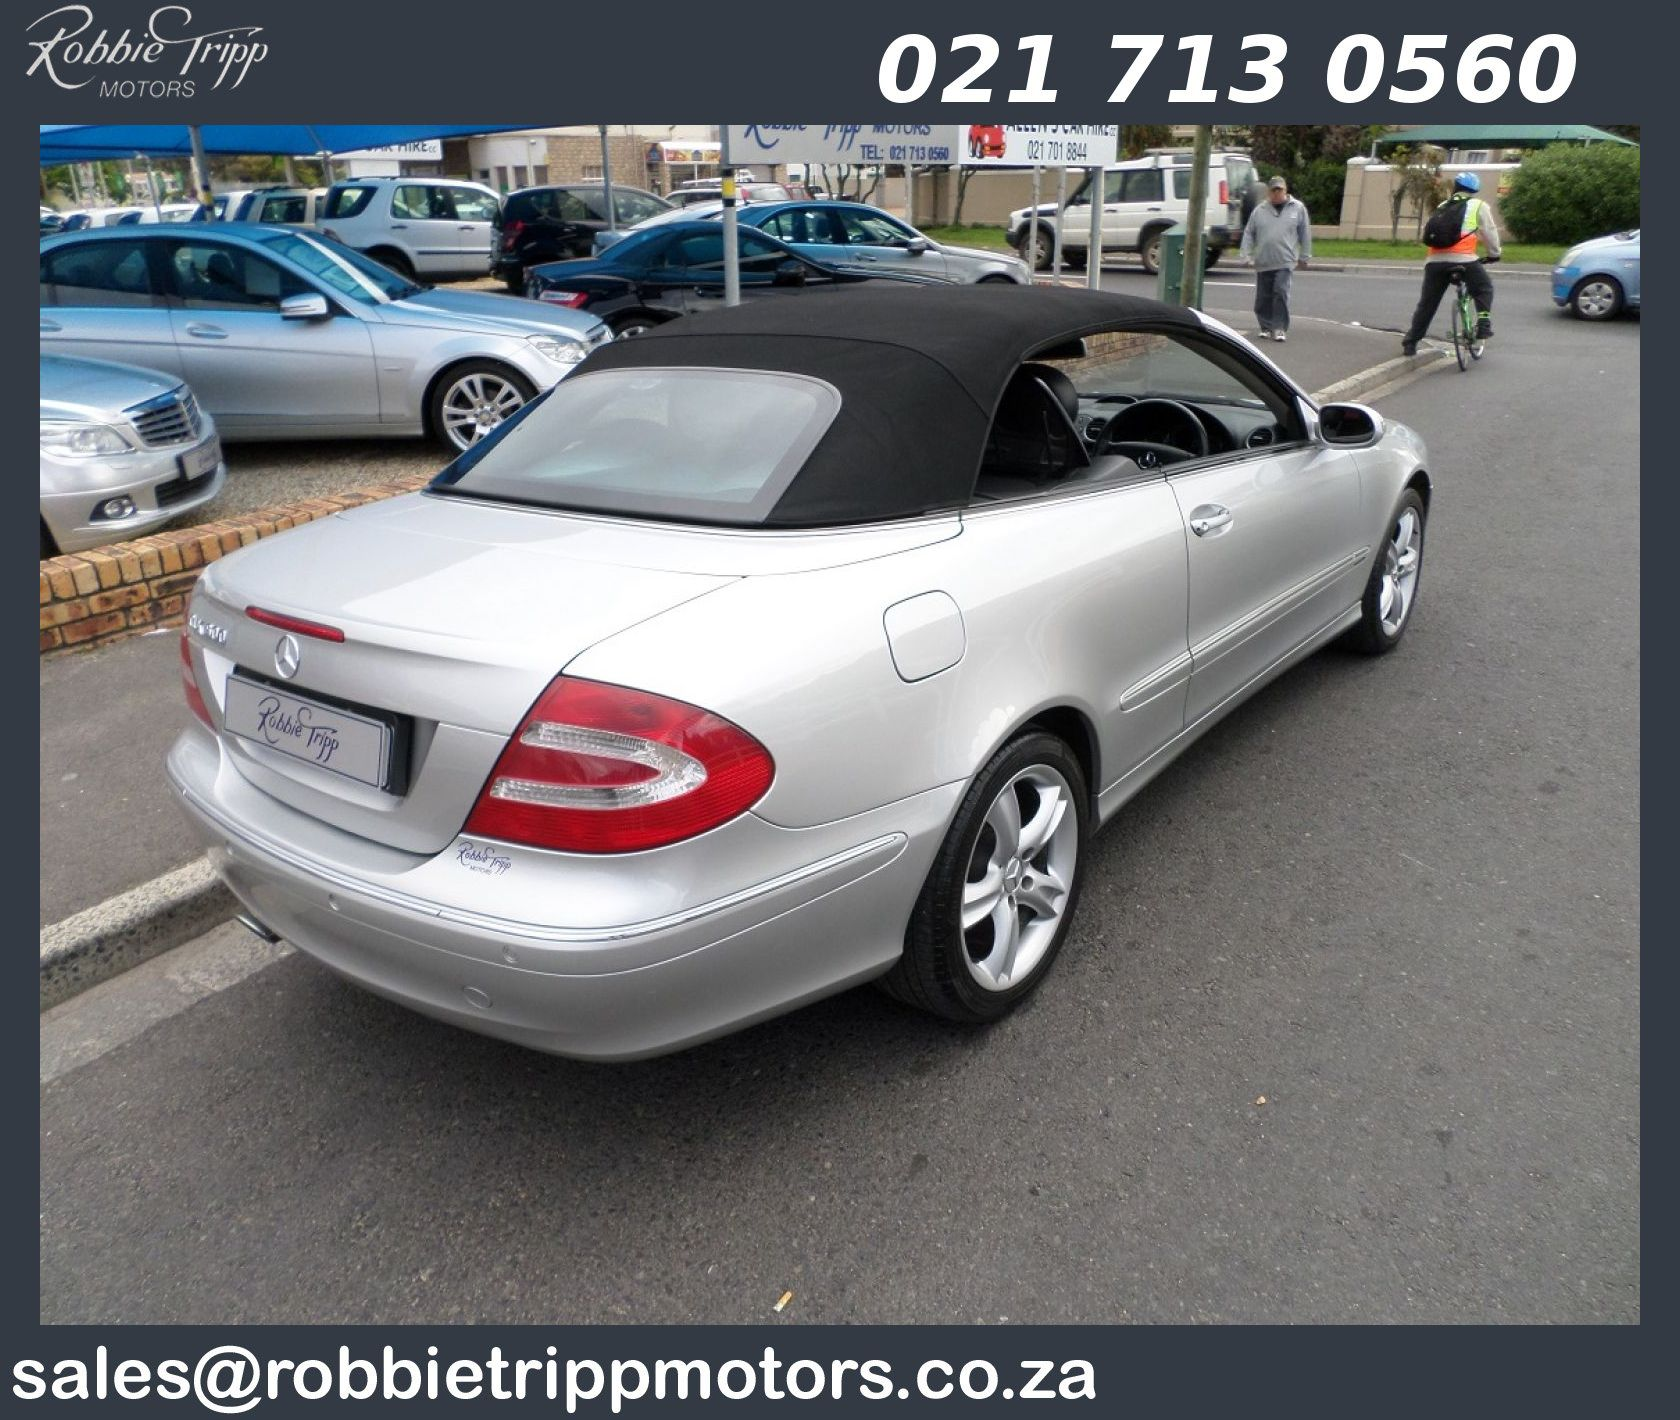 mercedes benz clk 500 cabriolet available. Black Bedroom Furniture Sets. Home Design Ideas